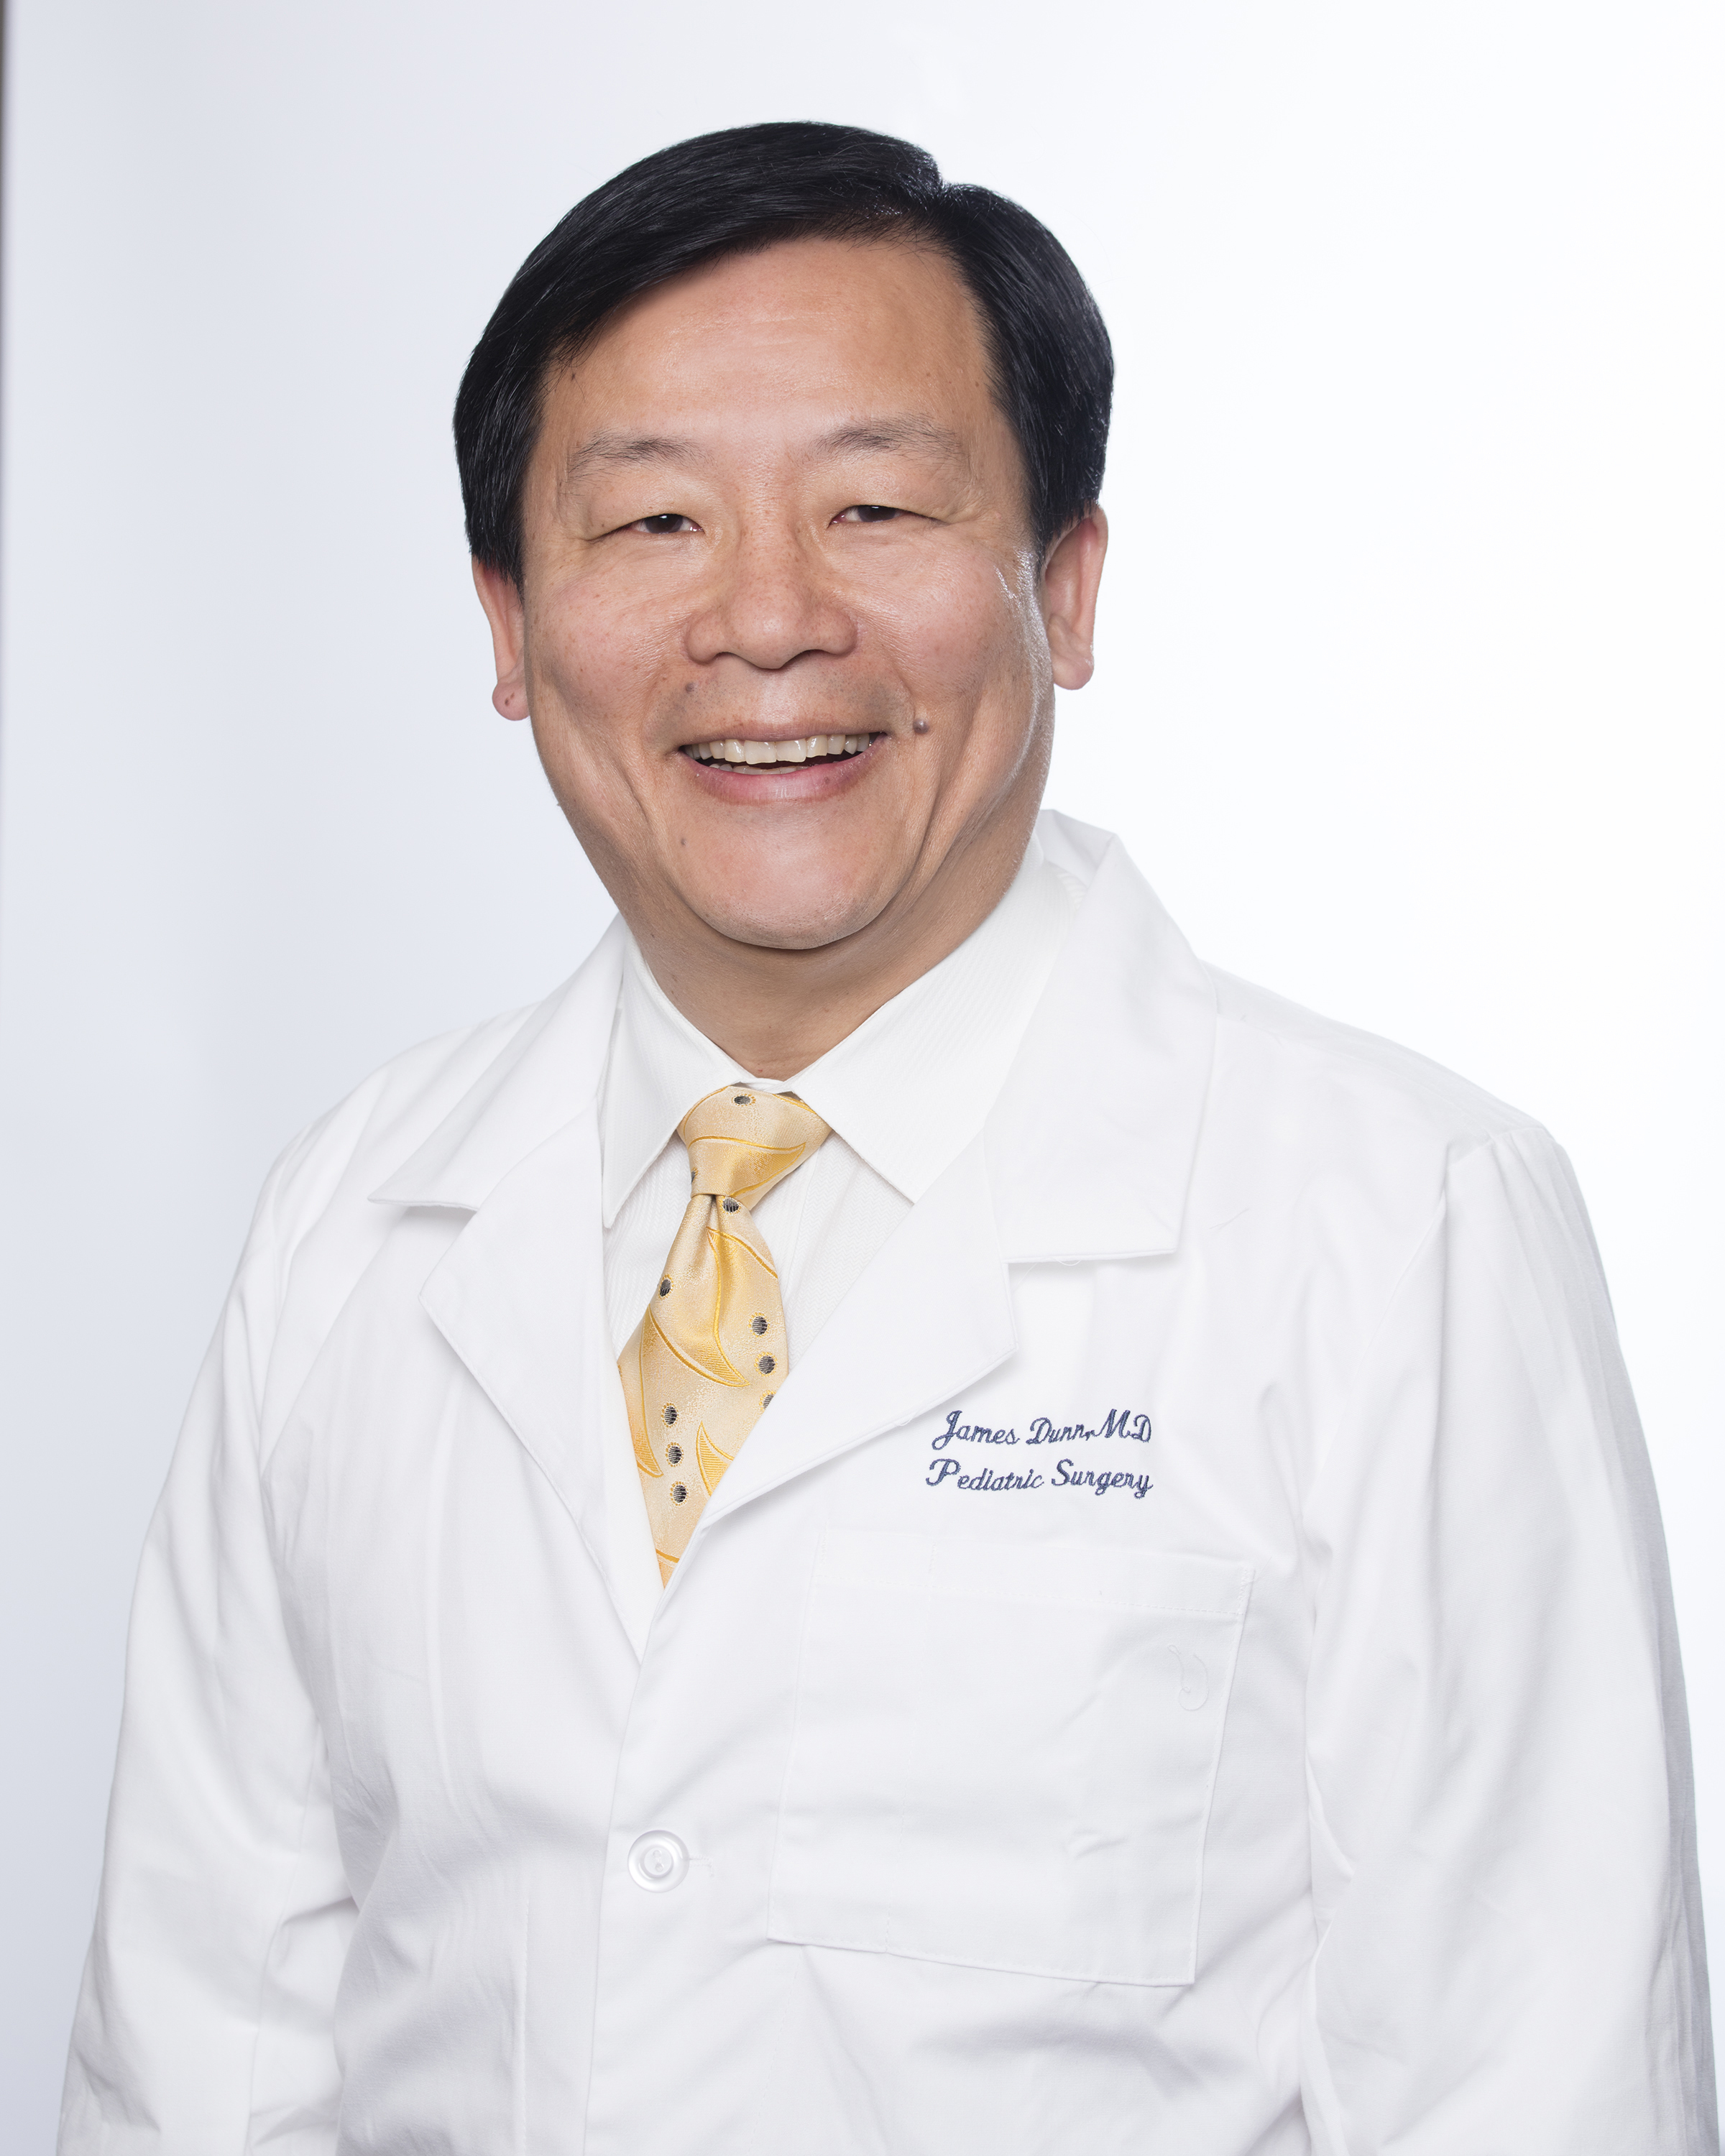 New Surgeon-in-Chief Appointed at Lucile Packard Children's